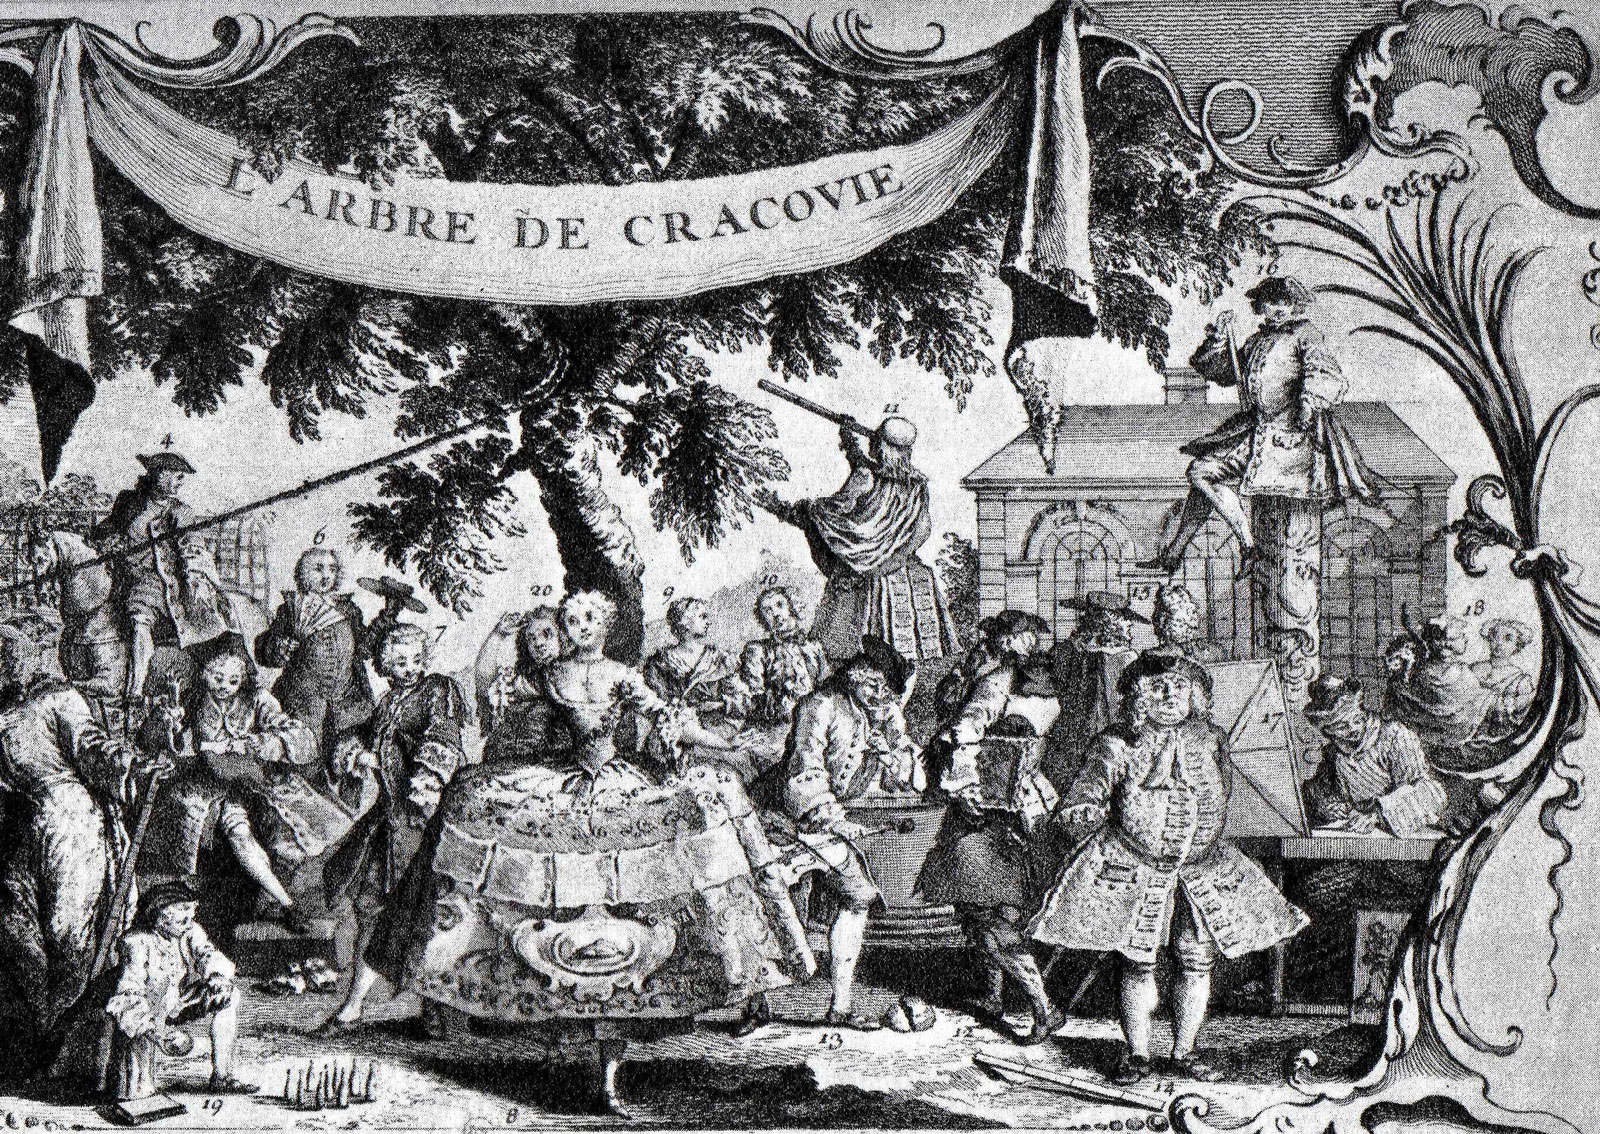 A print depicting the Tree of Cracow, in the gardens of the Palais Royal, circa 1742